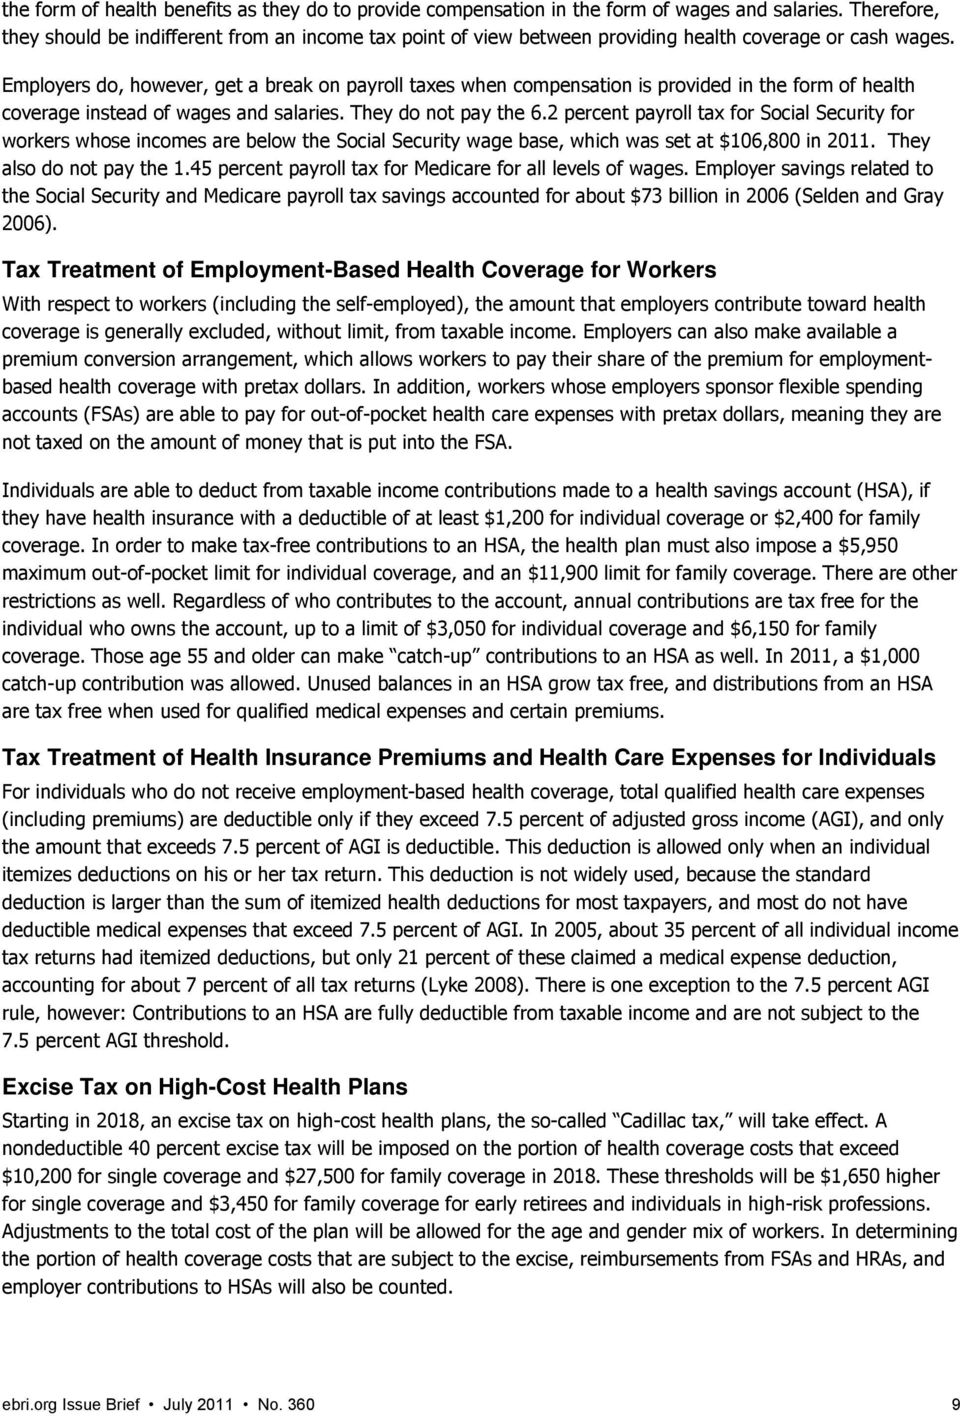 Employers do, however, get a break on payroll taxes when compensation is provided in the form of health coverage instead of wages and salaries. They do not pay the 6.